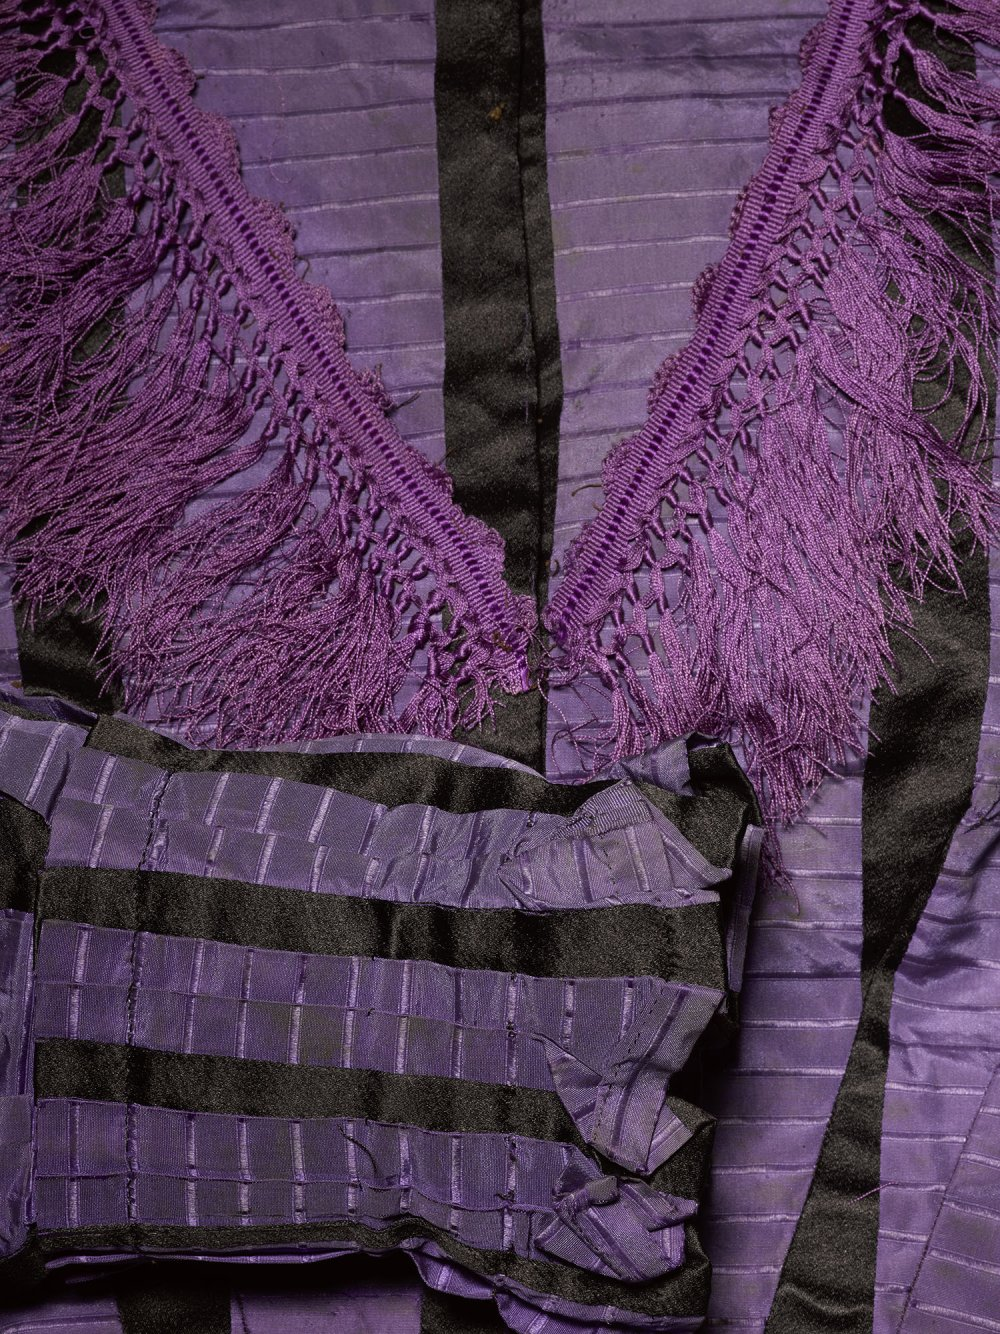 Detail of fringing and sleeve on a purple dress dyed with Perkin's mauveine dye c.1862